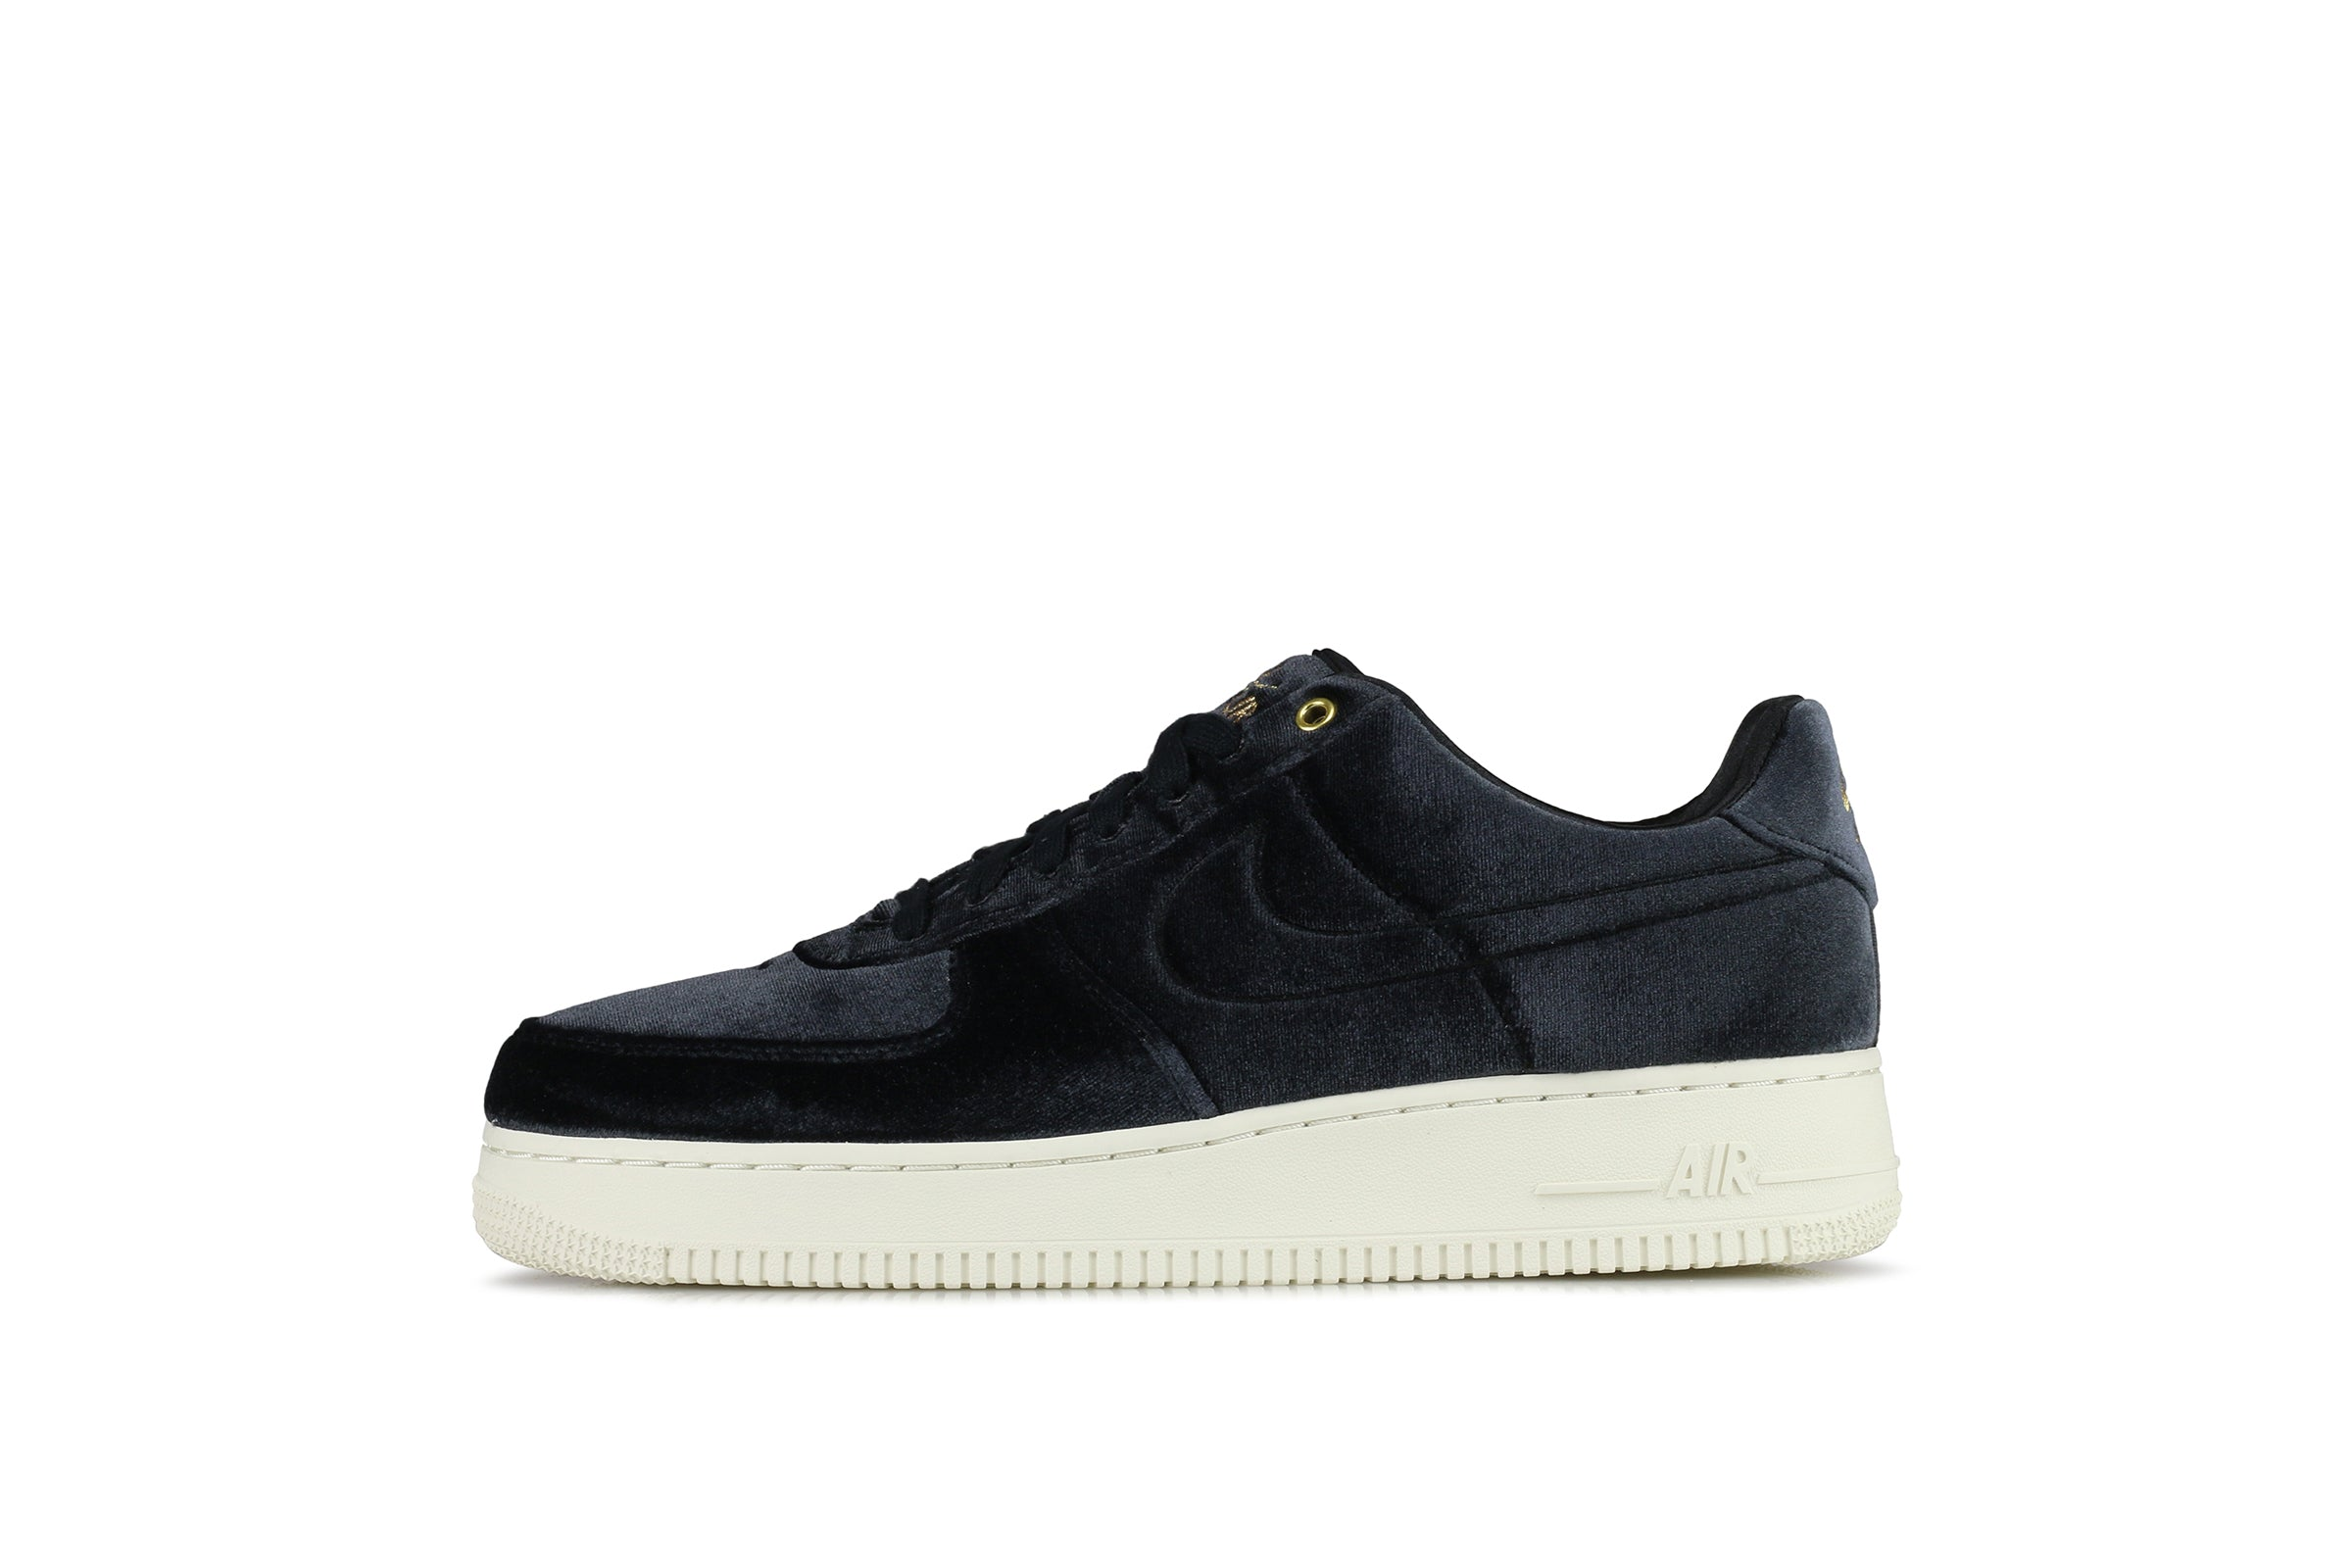 0101877c729 Nike Air Force 1 '07 Premium 3